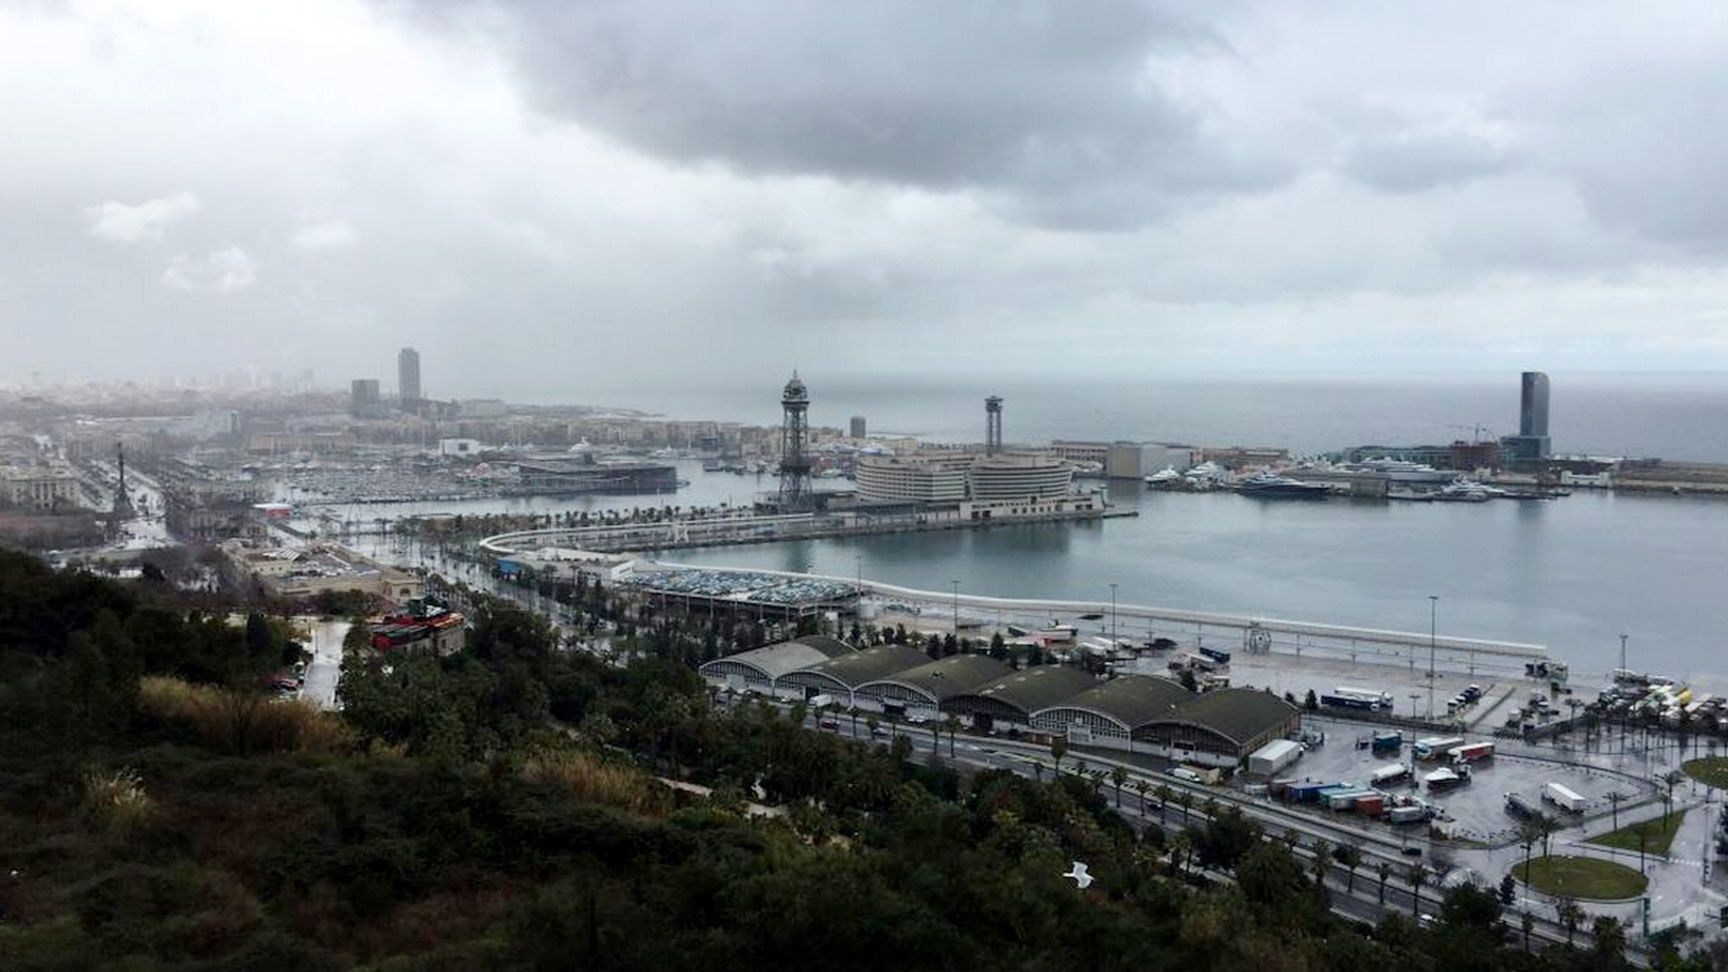 View overlooking part of Barcelona